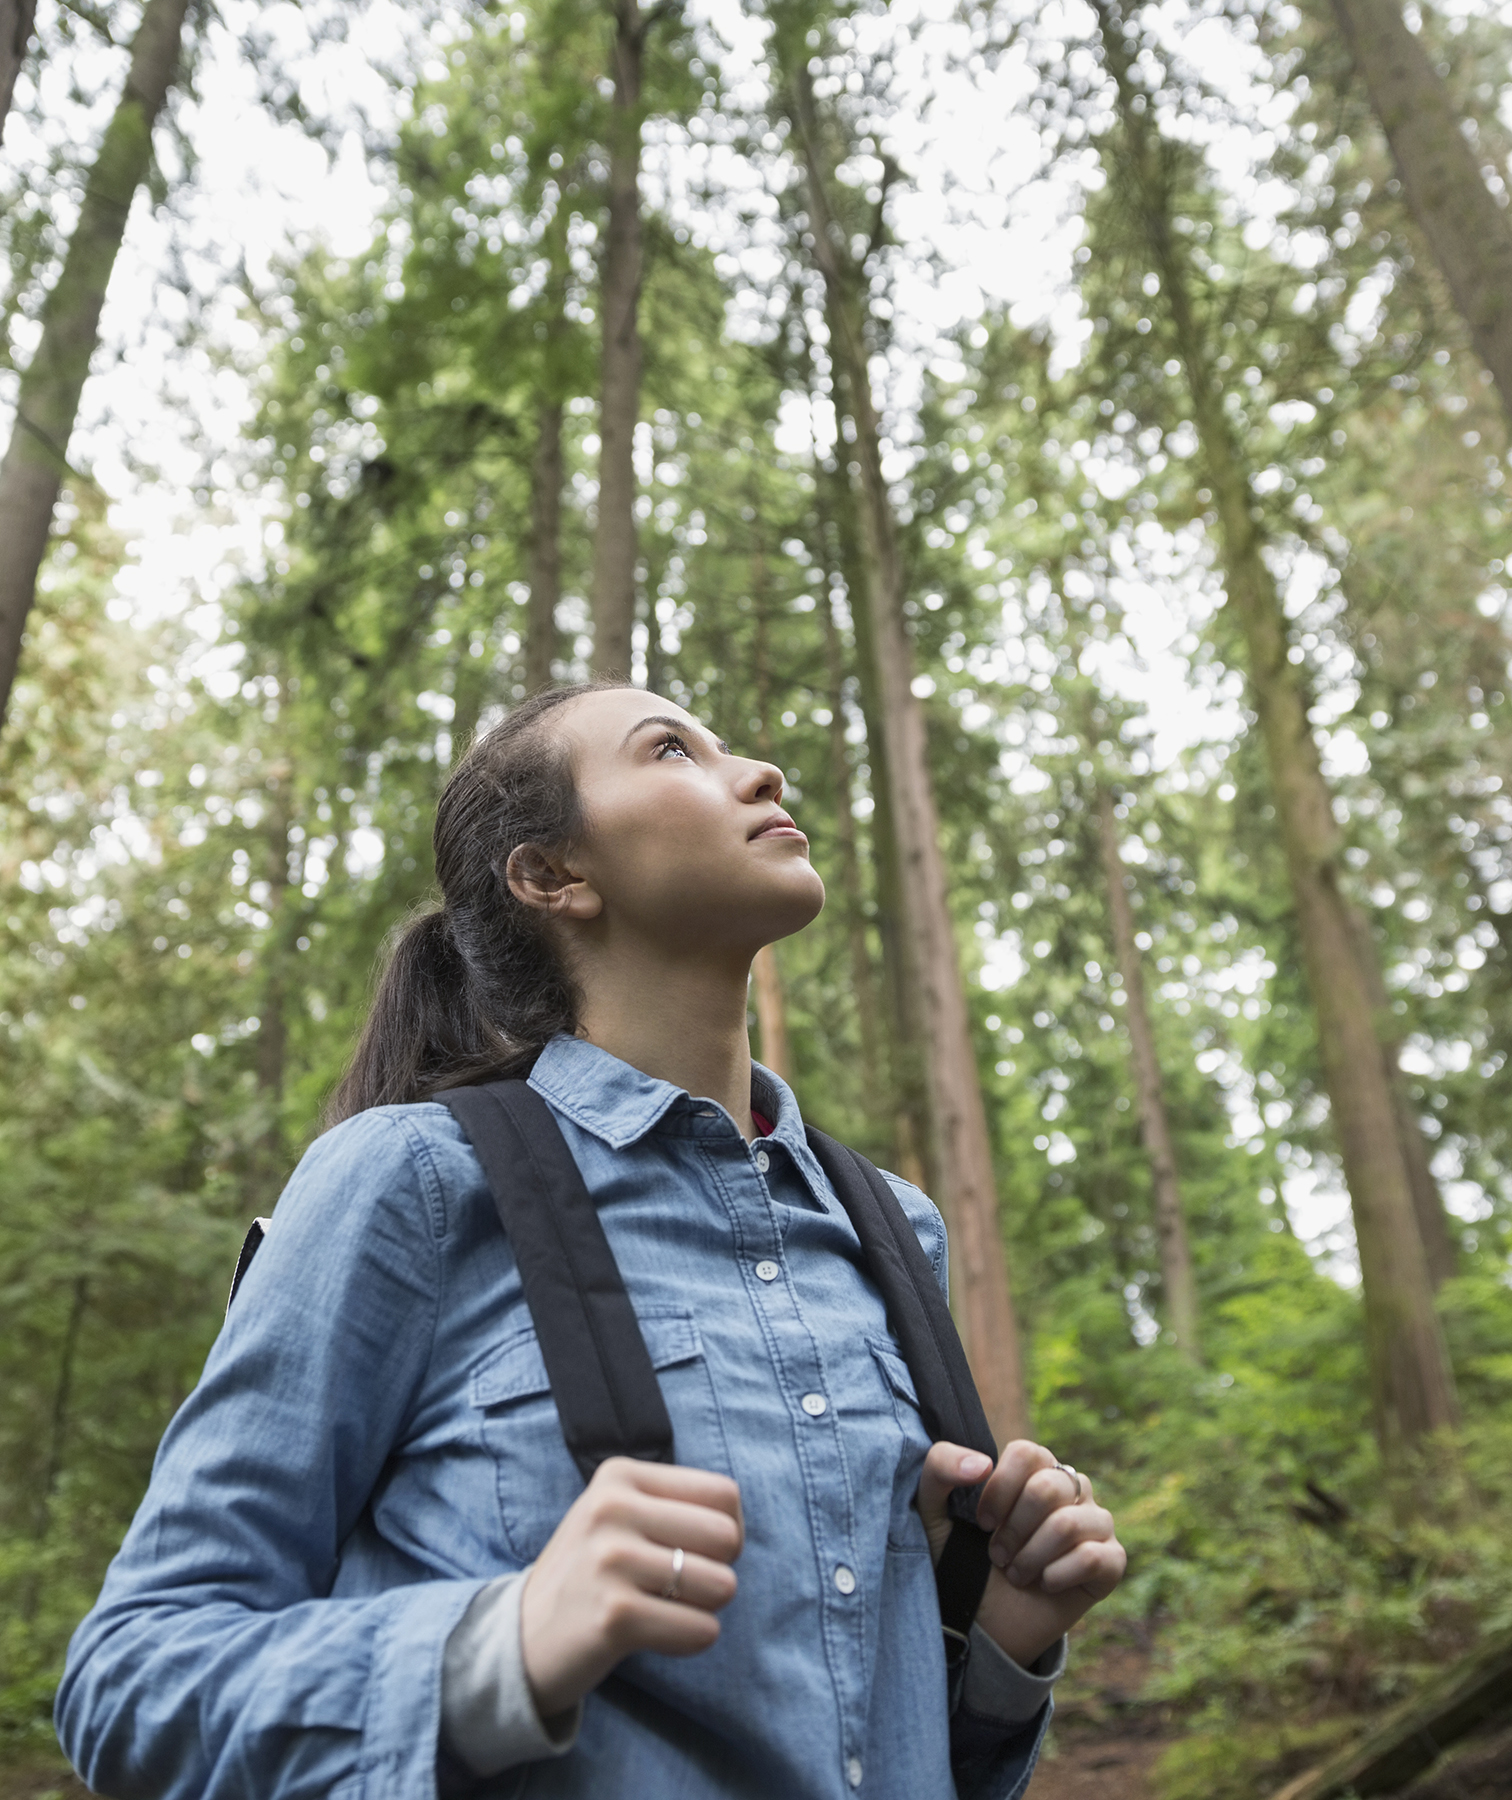 Woman looking up at trees in the forest